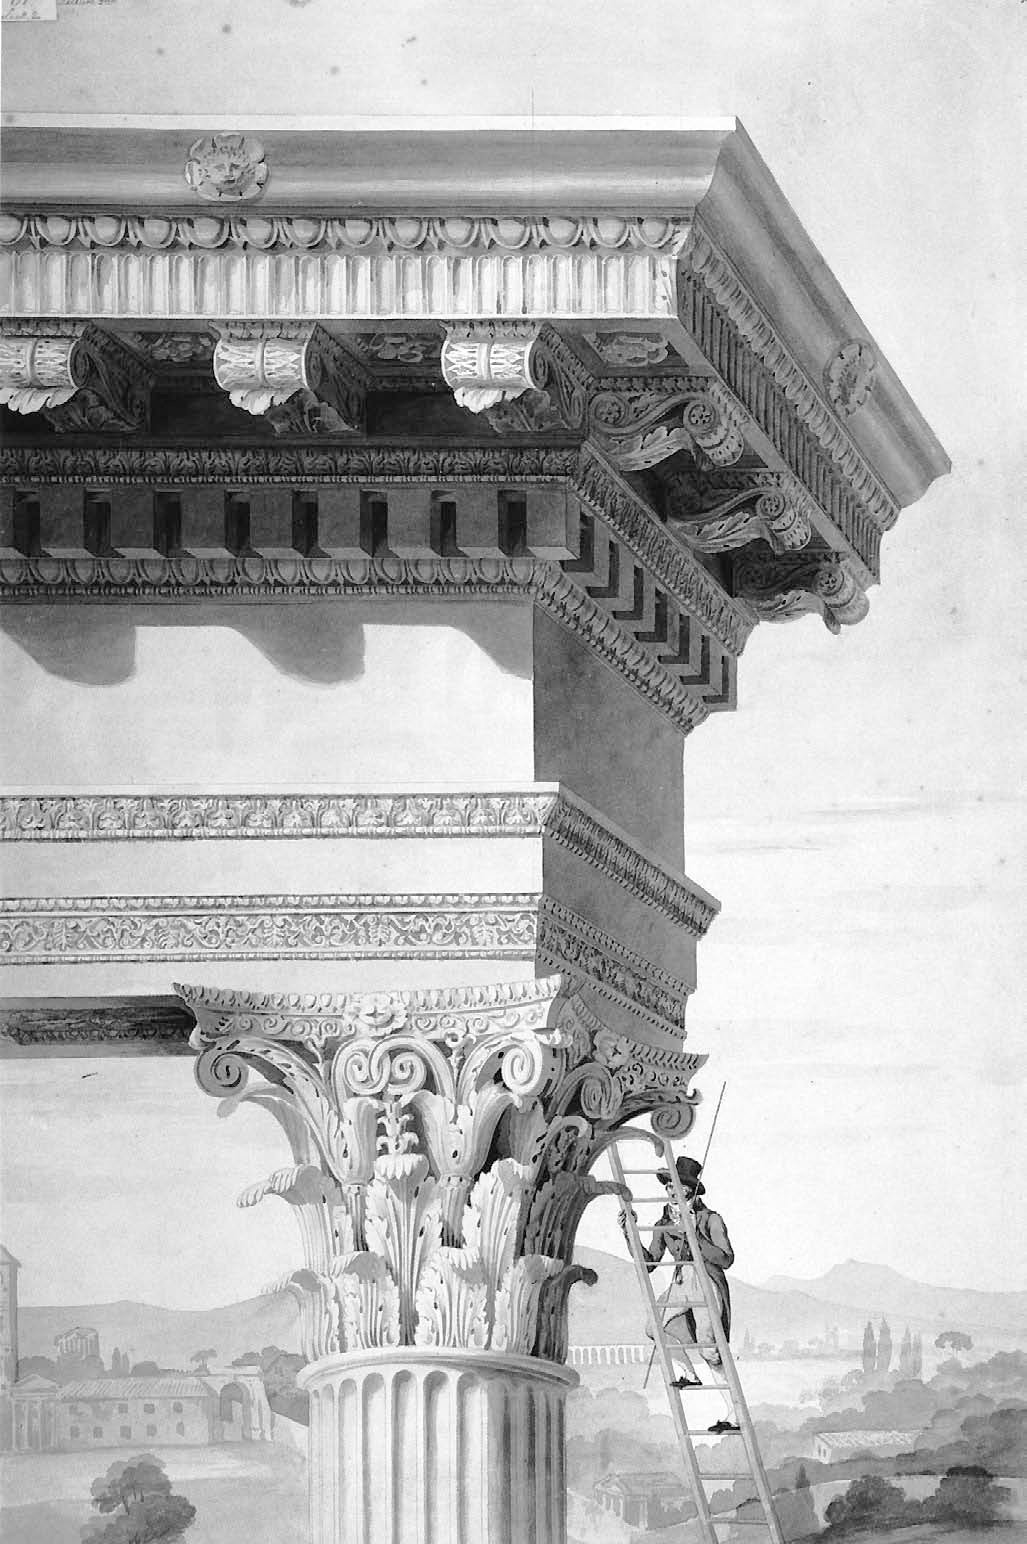 This drawing taken from Roman Forum by David Watkin is by Henry Parke (c. 1810) and shows a student of architecture climbing up to the top of the Temple of Castor and Pollux, measuring rod in hand. The drawing shows an idealized temple, not the ruin that Parke would actually have seen.  Photo 2 of 4 in Wonders of the World